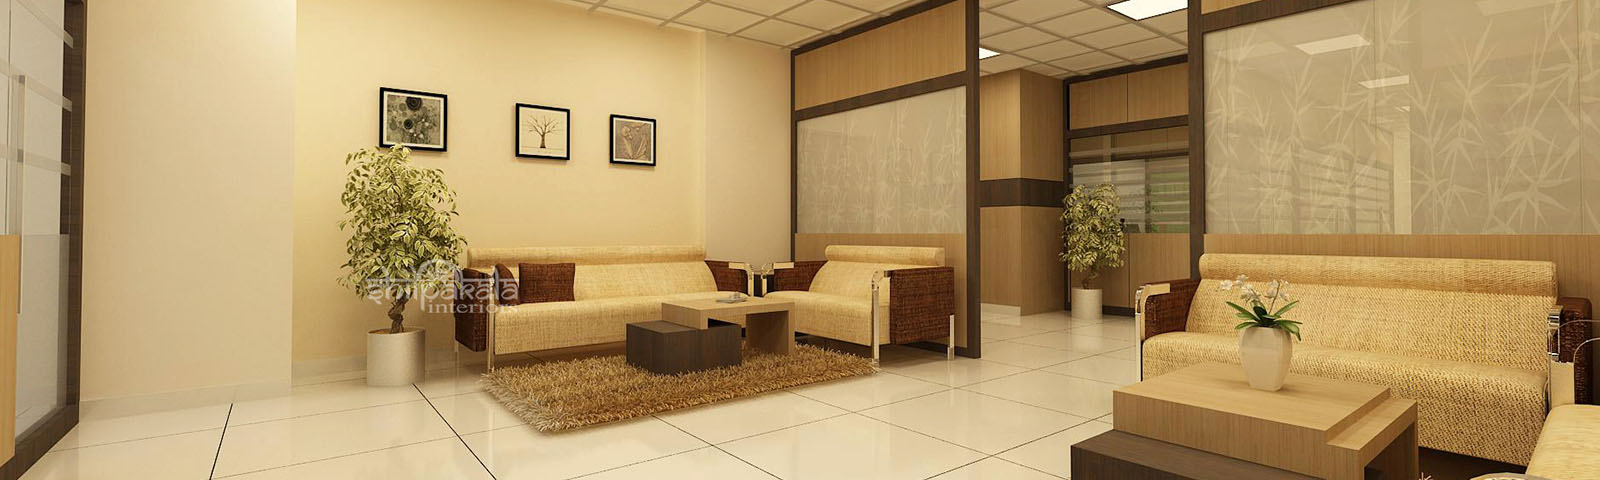 Office interior designers Kerala